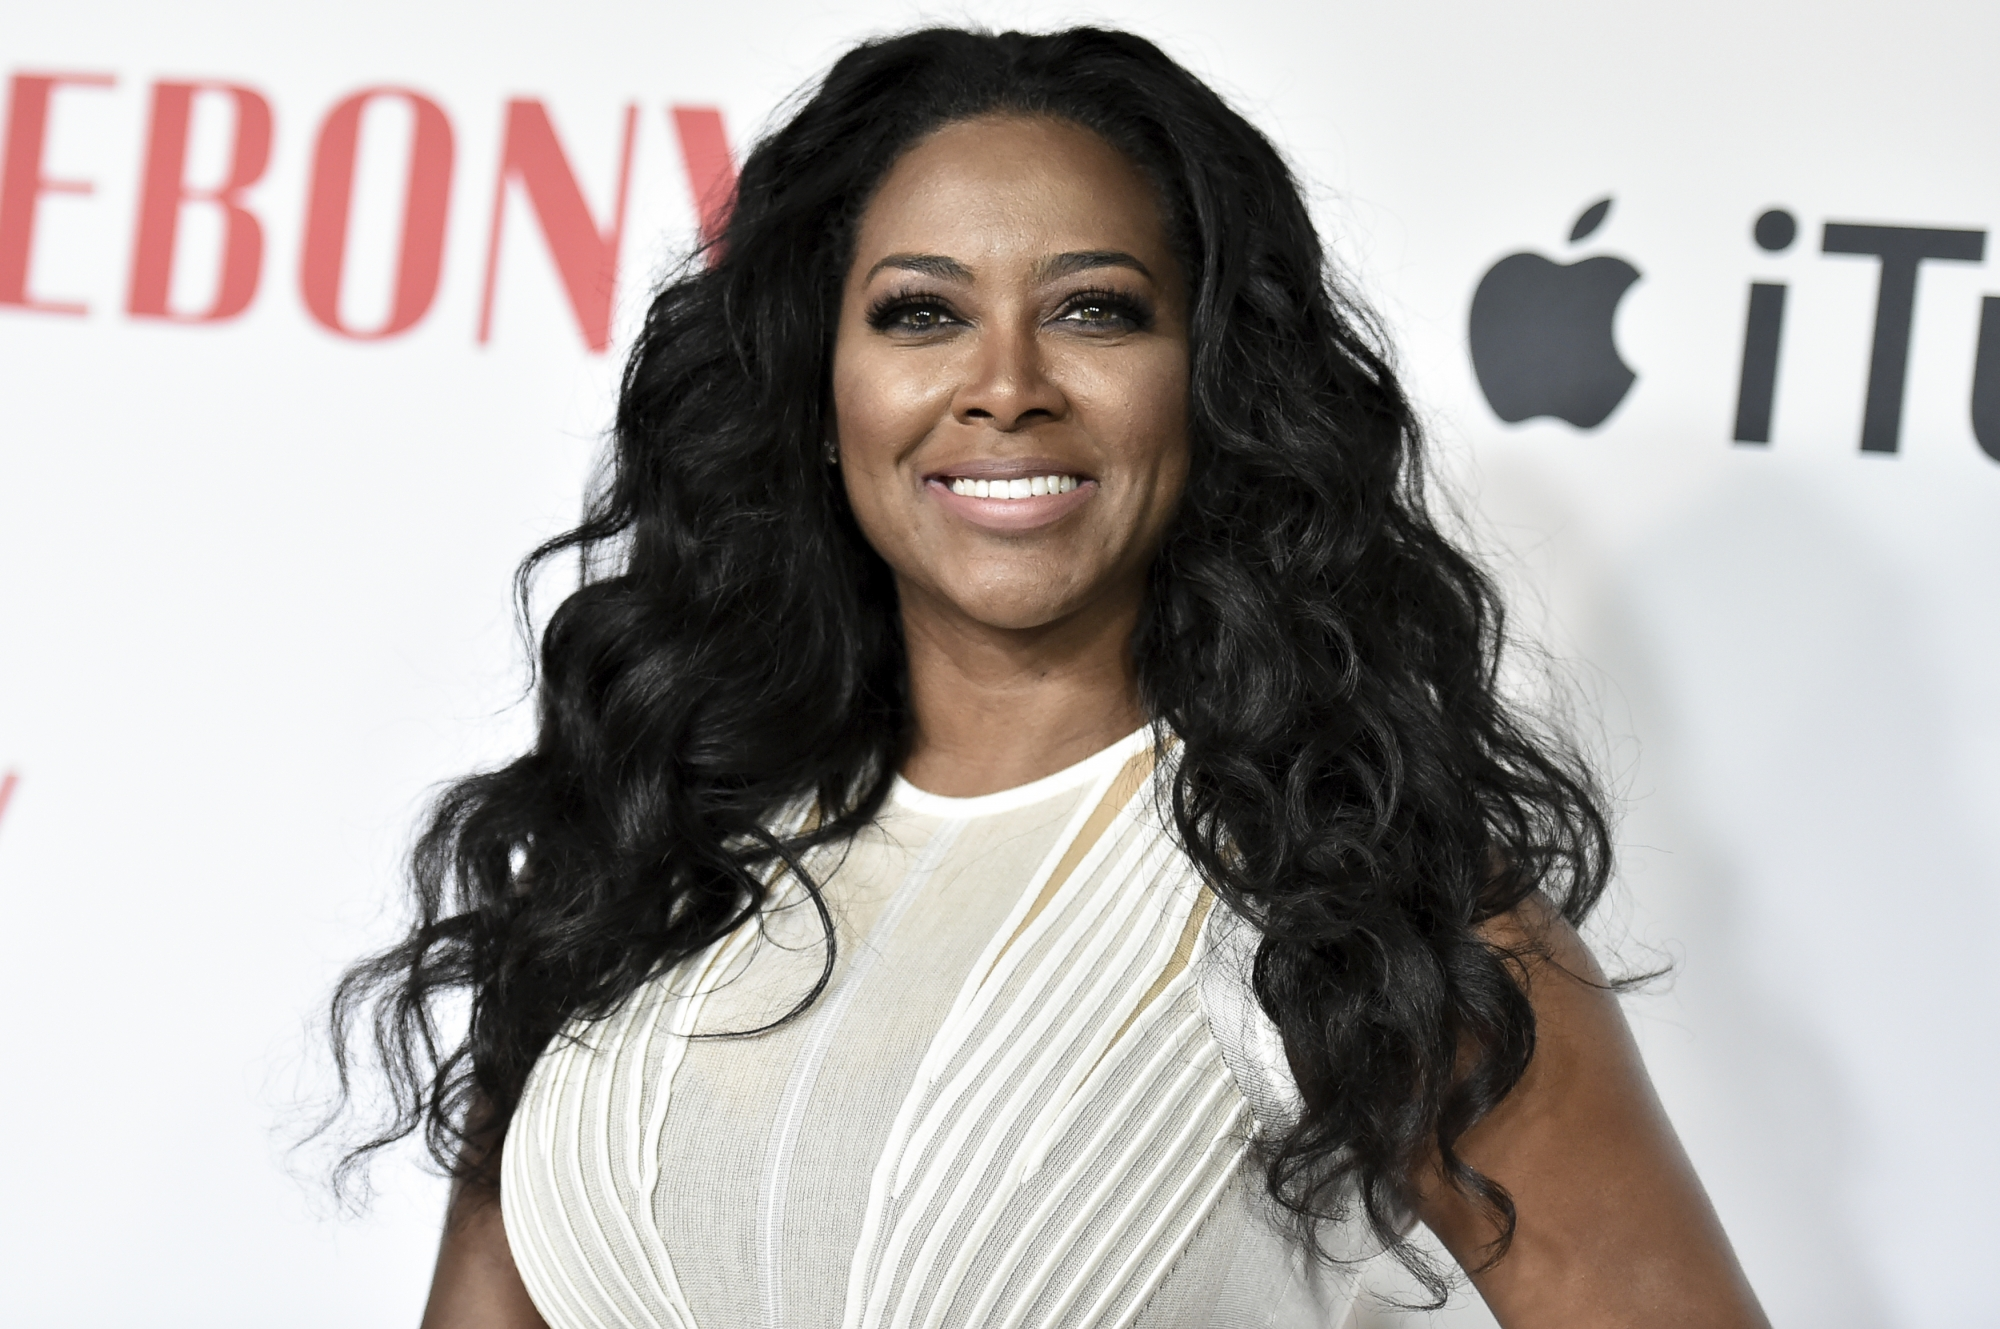 Kenya Moore S Fans Discuss Her Hair Care Products And Supplements Celebrity Insider